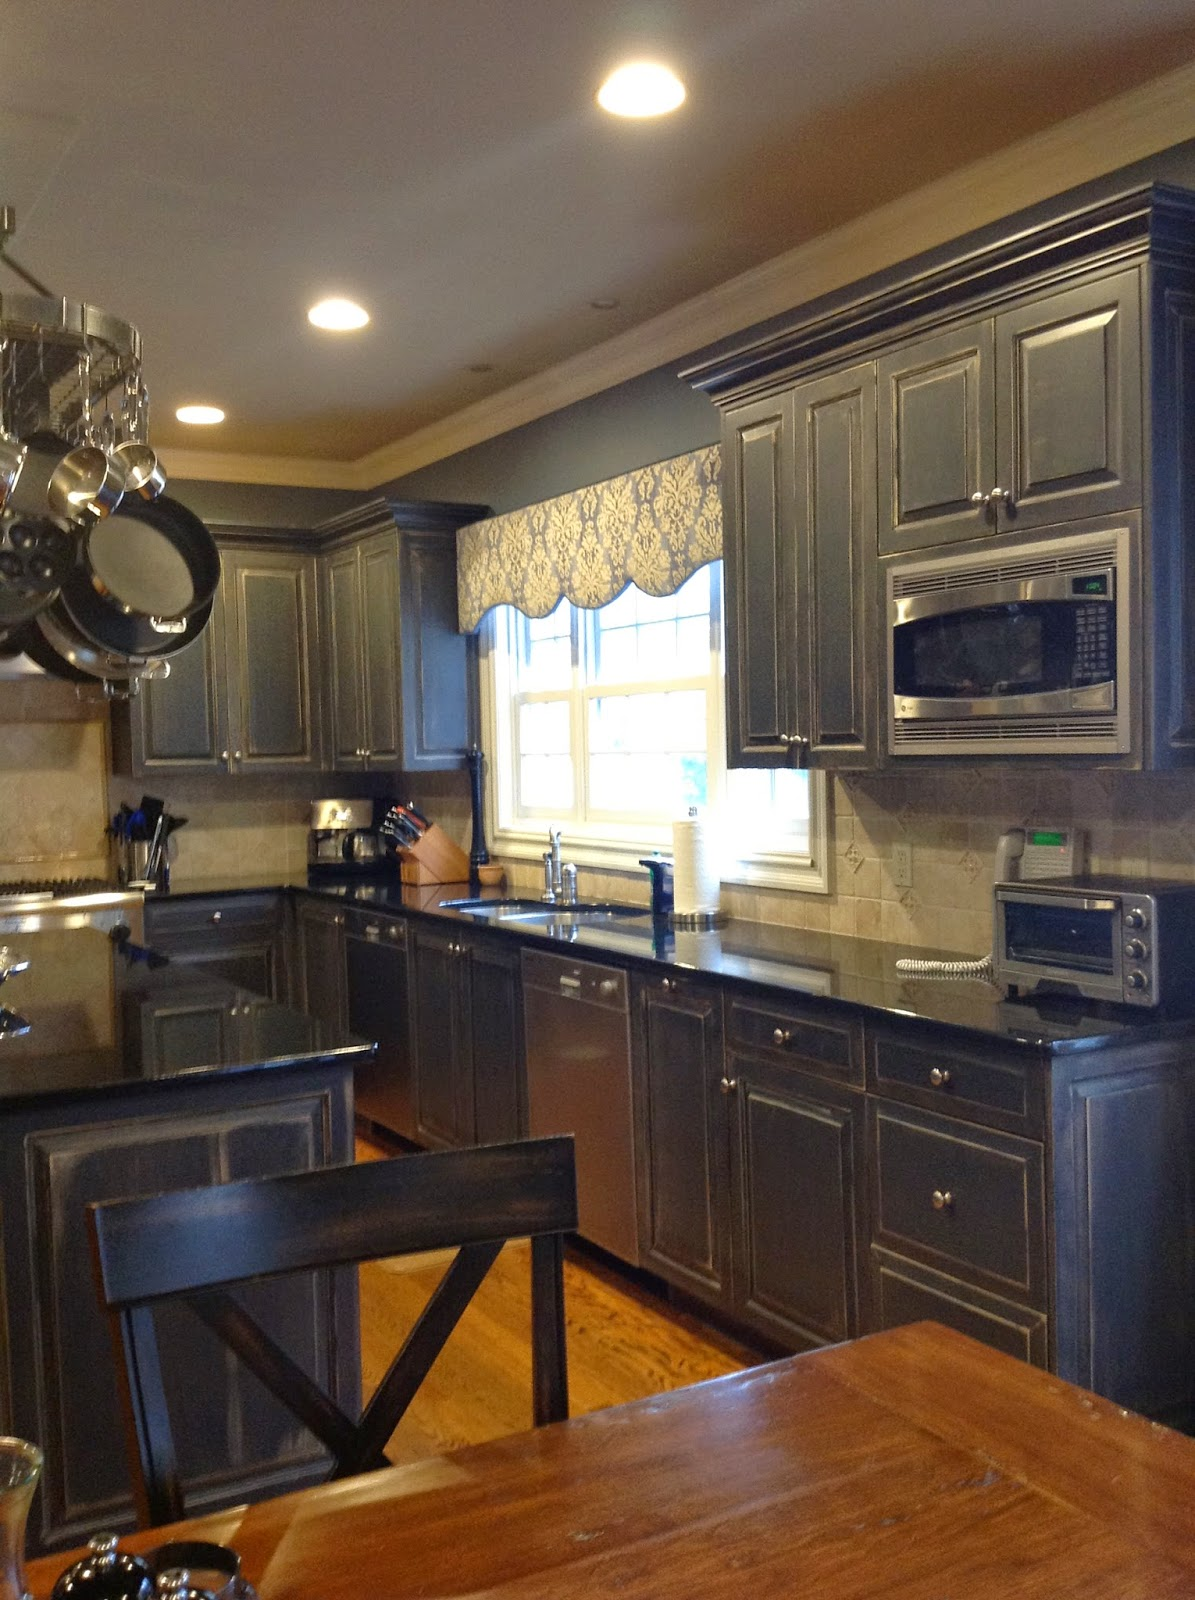 colors of kitchen cabinets and bath st louis color forte: benjamin moore normandy 2129-40 paint ...